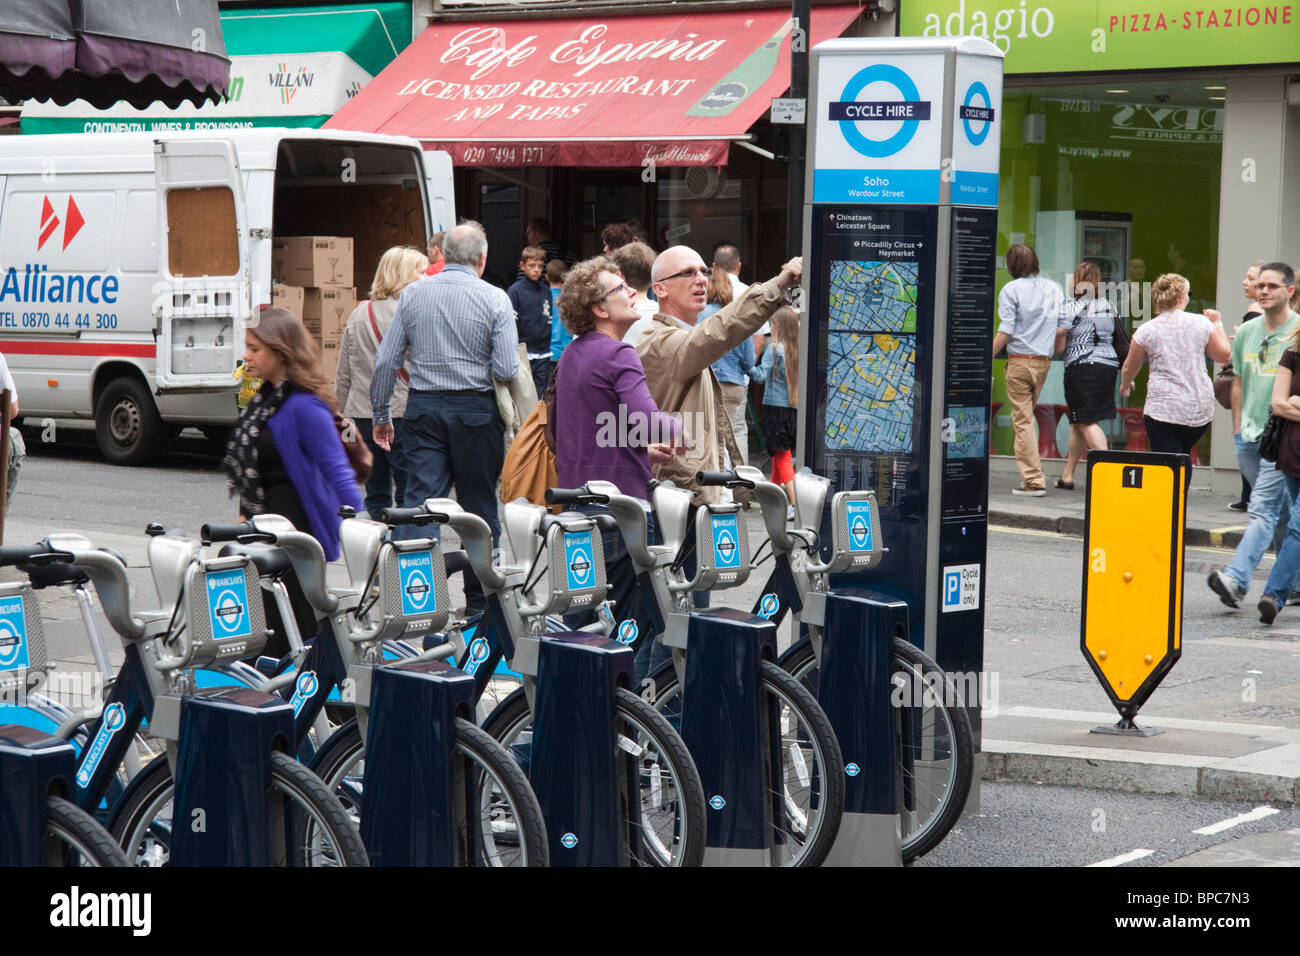 London cycle hire scheme, West End, Londres, Angleterre, Royaume-Uni Banque D'Images